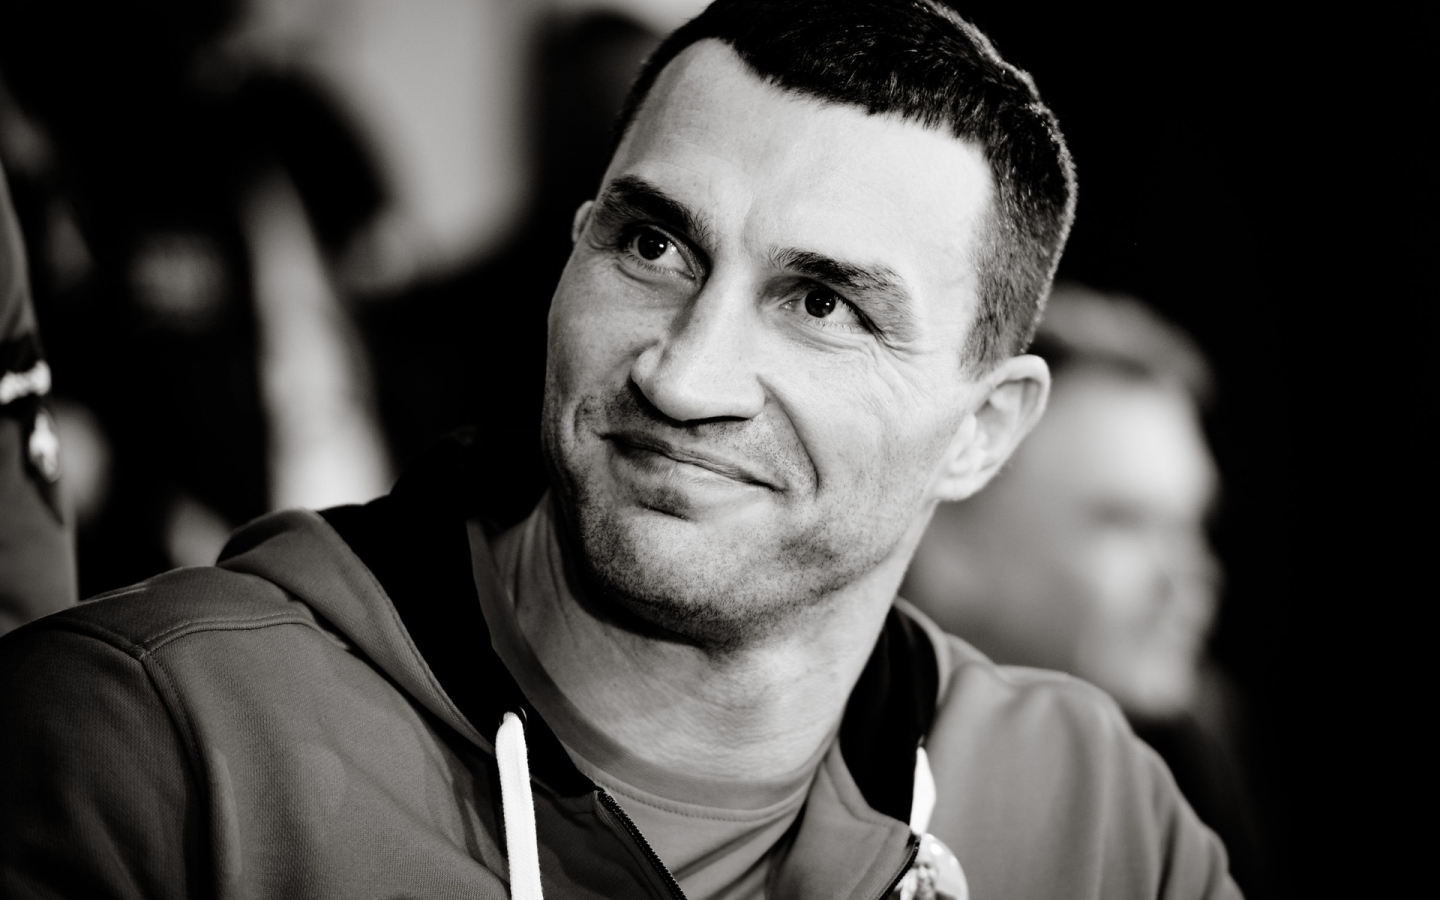 Wladimir Klitschko  for 1440 x 900 widescreen resolution